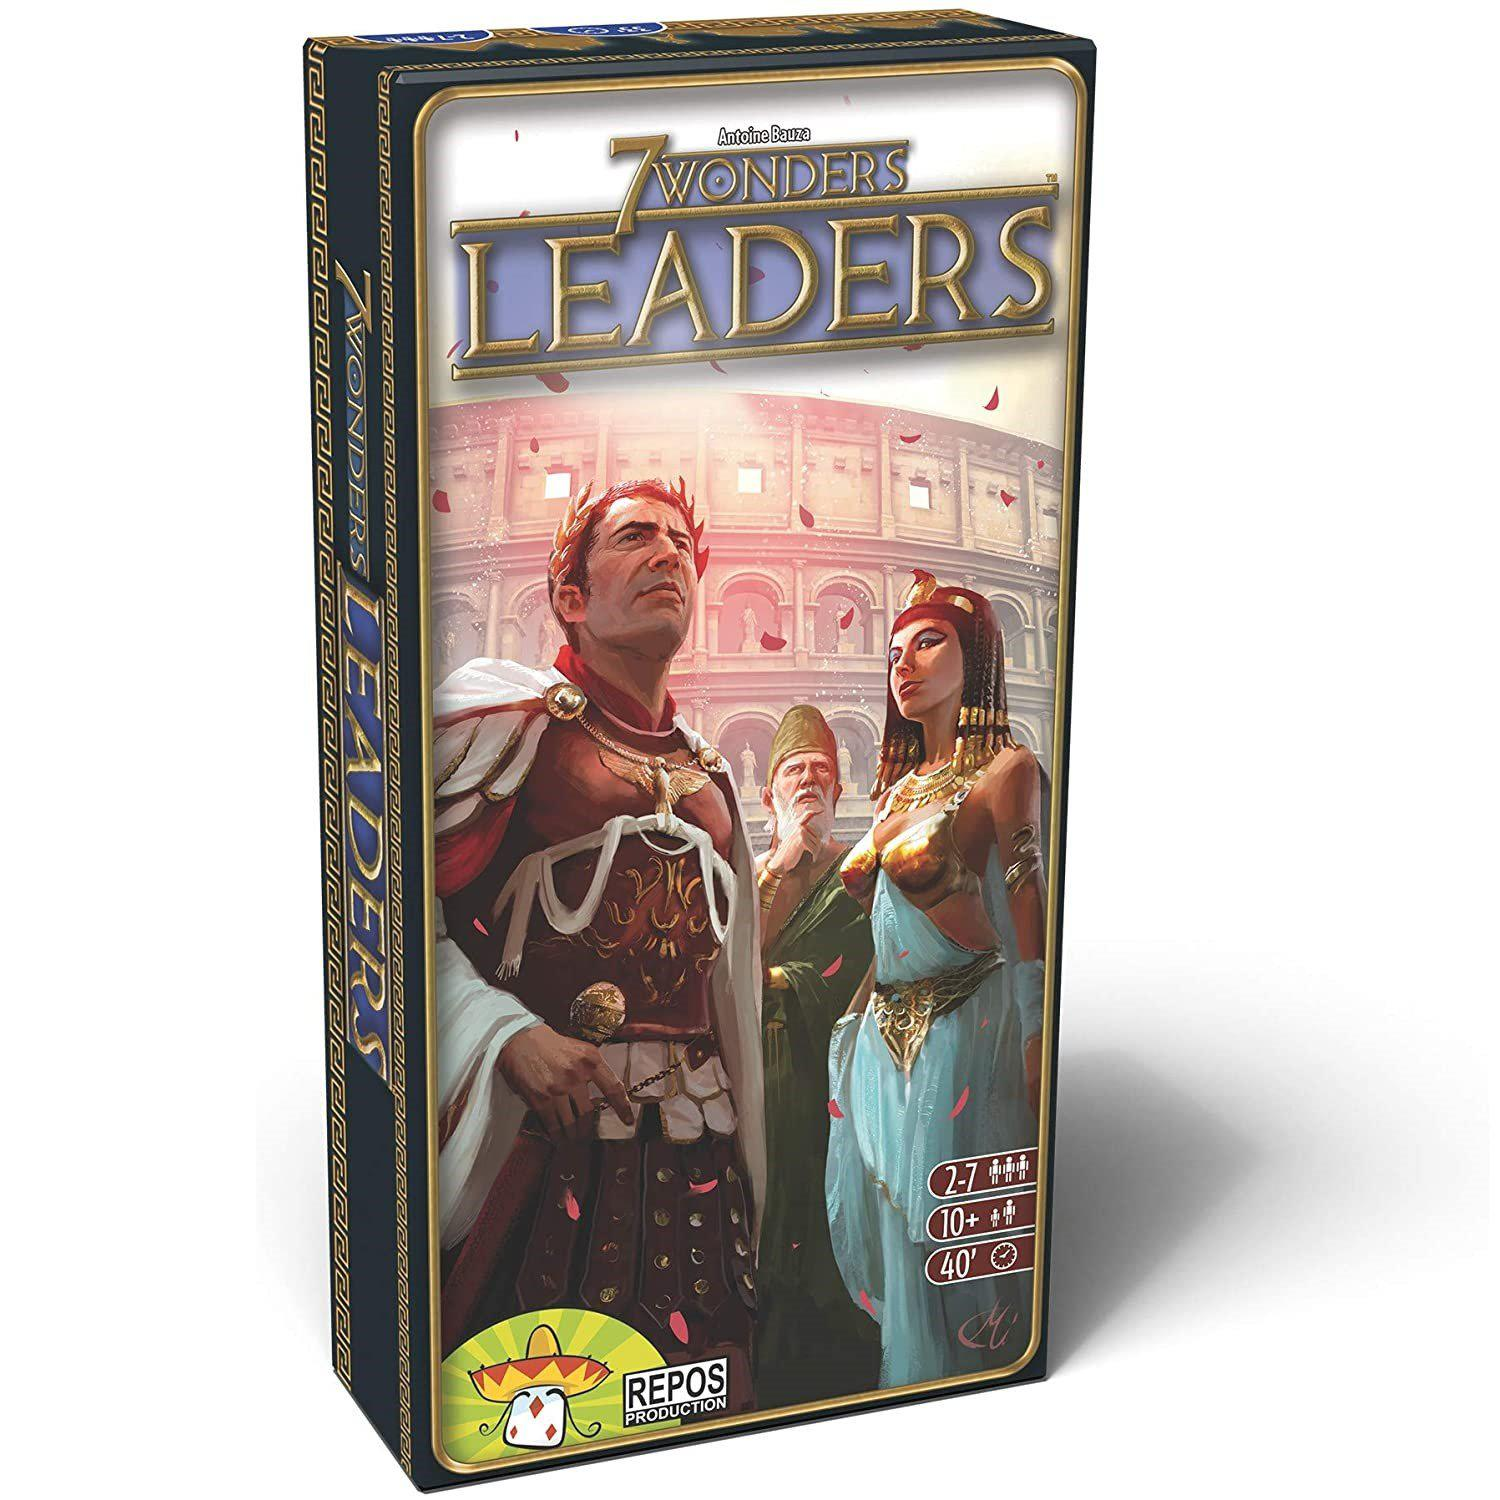 7 Wonders: Leaders - The Sword & Board